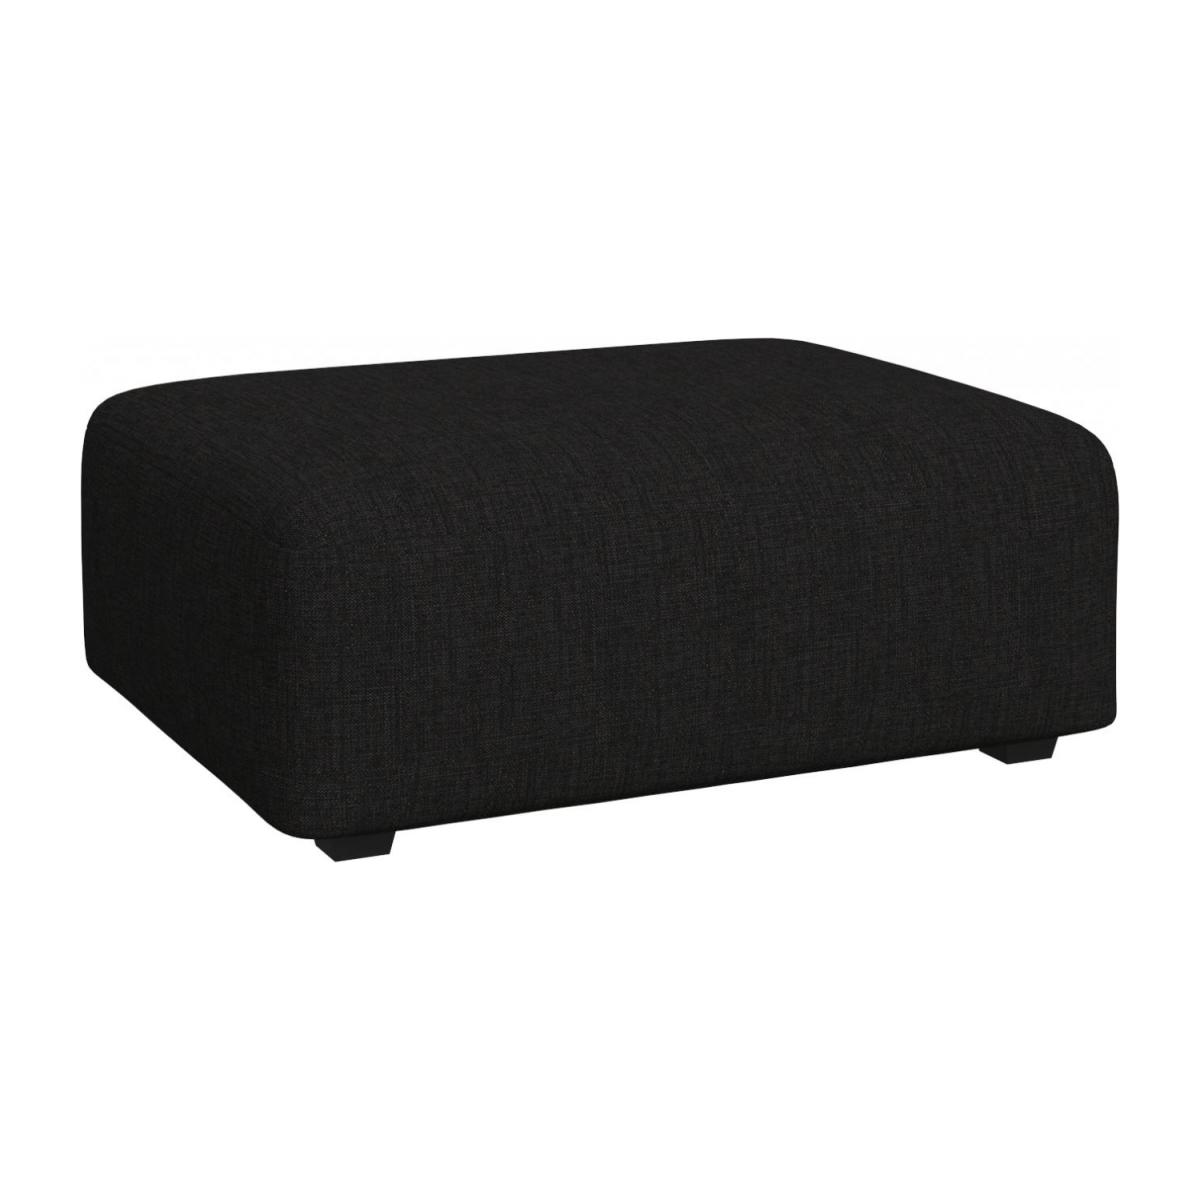 Footstool in Ancio fabric, nero n°1